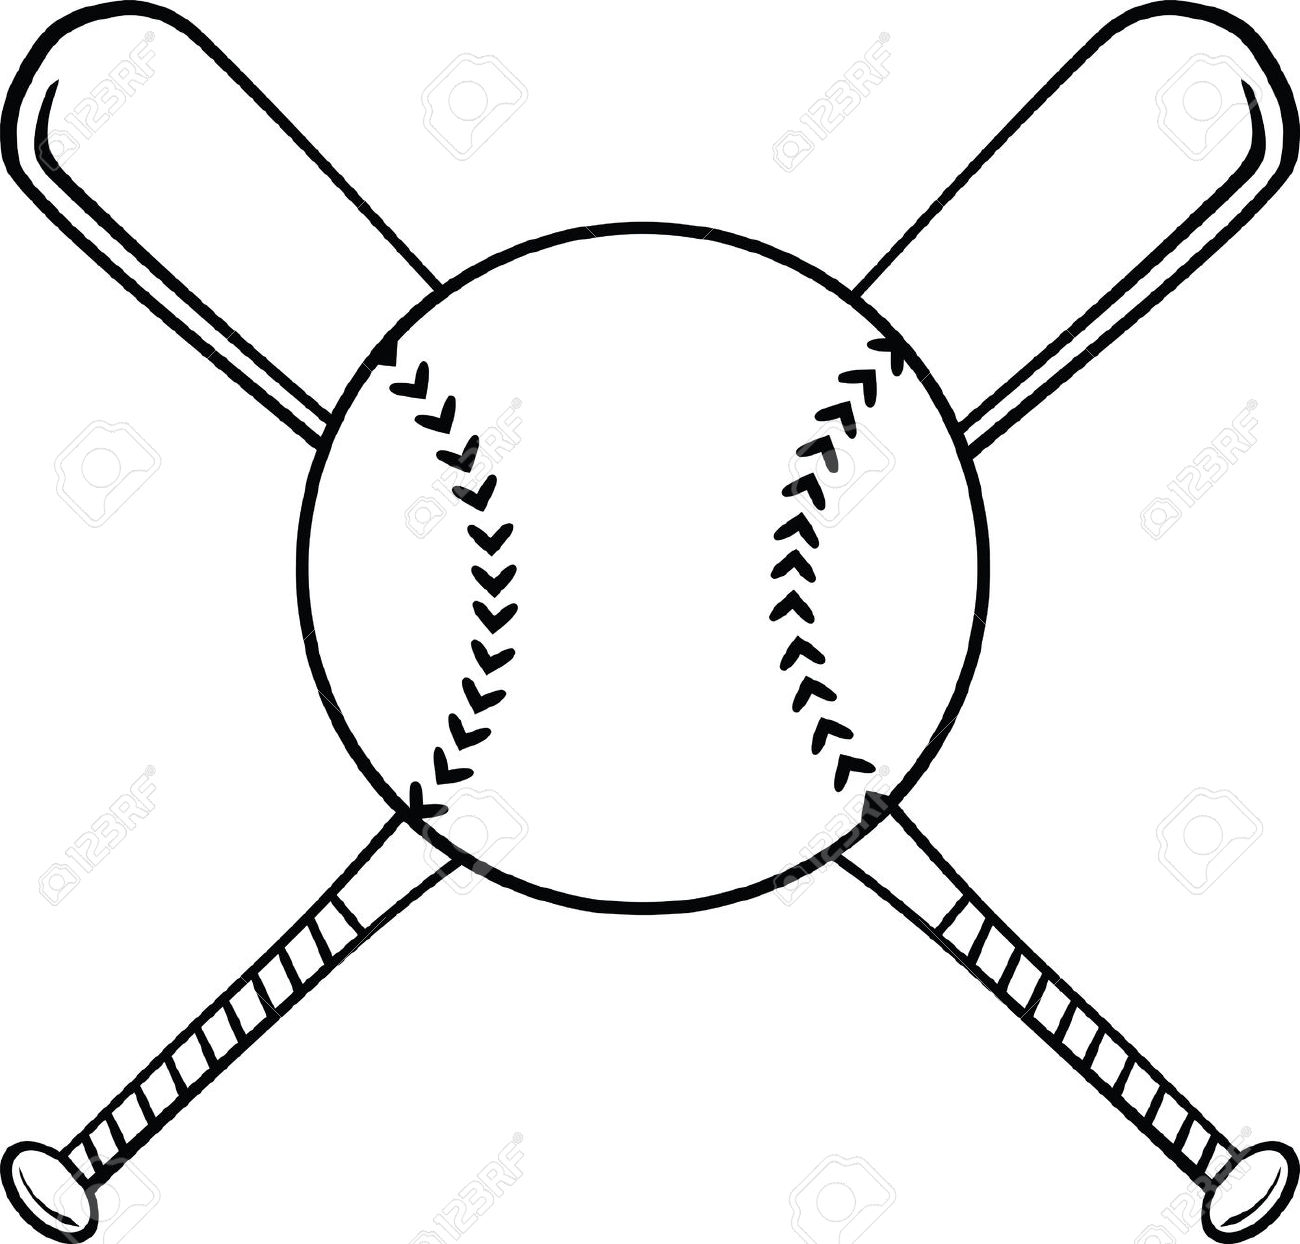 Baseball Player Clipart Black And White